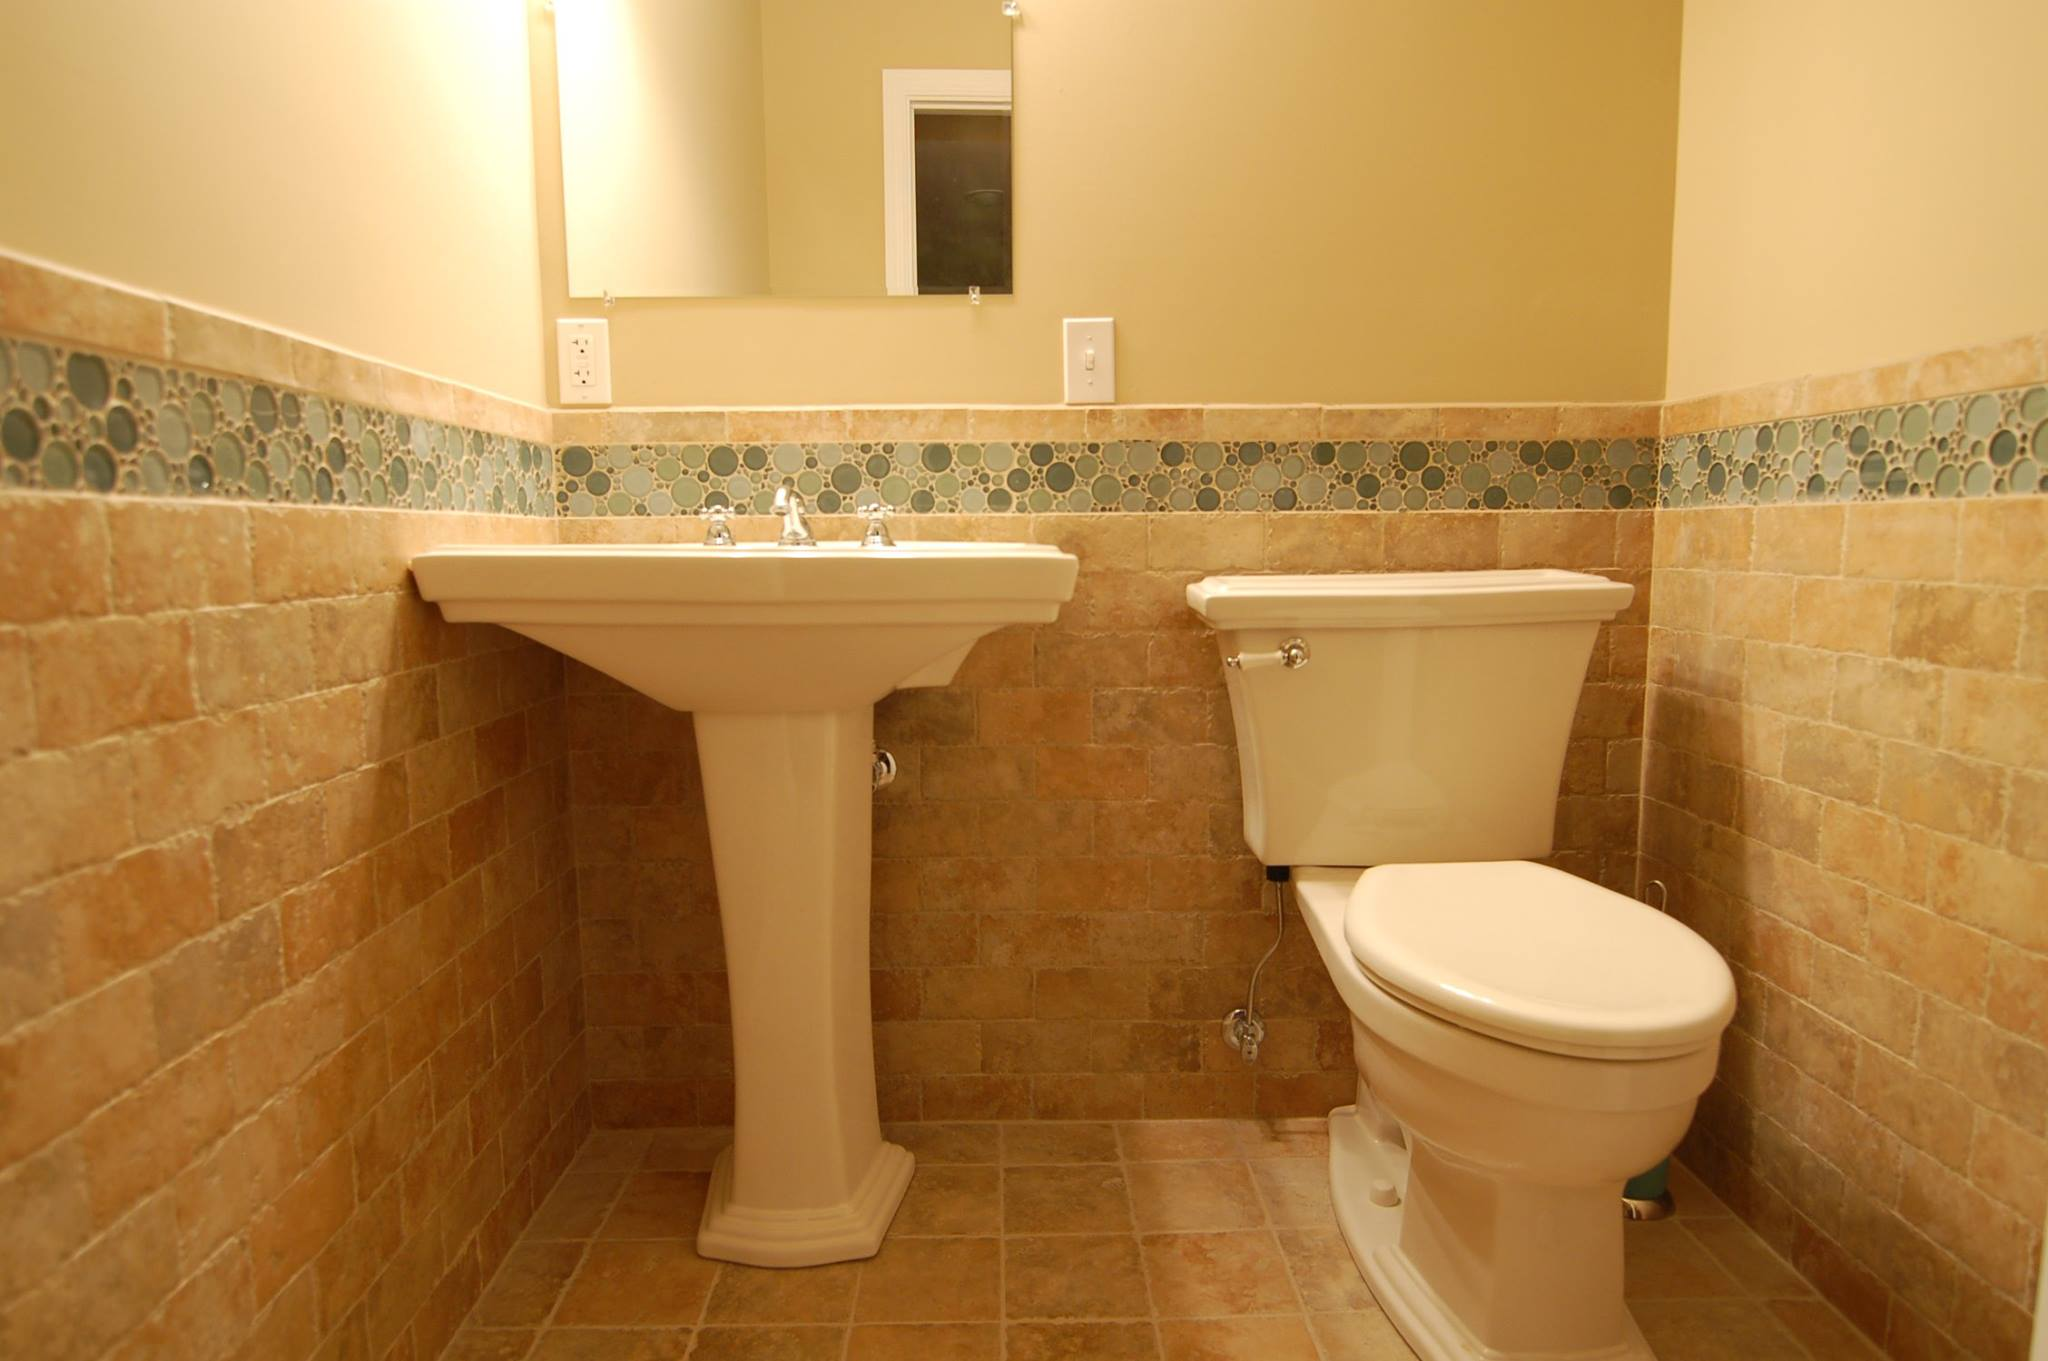 January 27th Is Thomas Crapper Day Design Build Pros